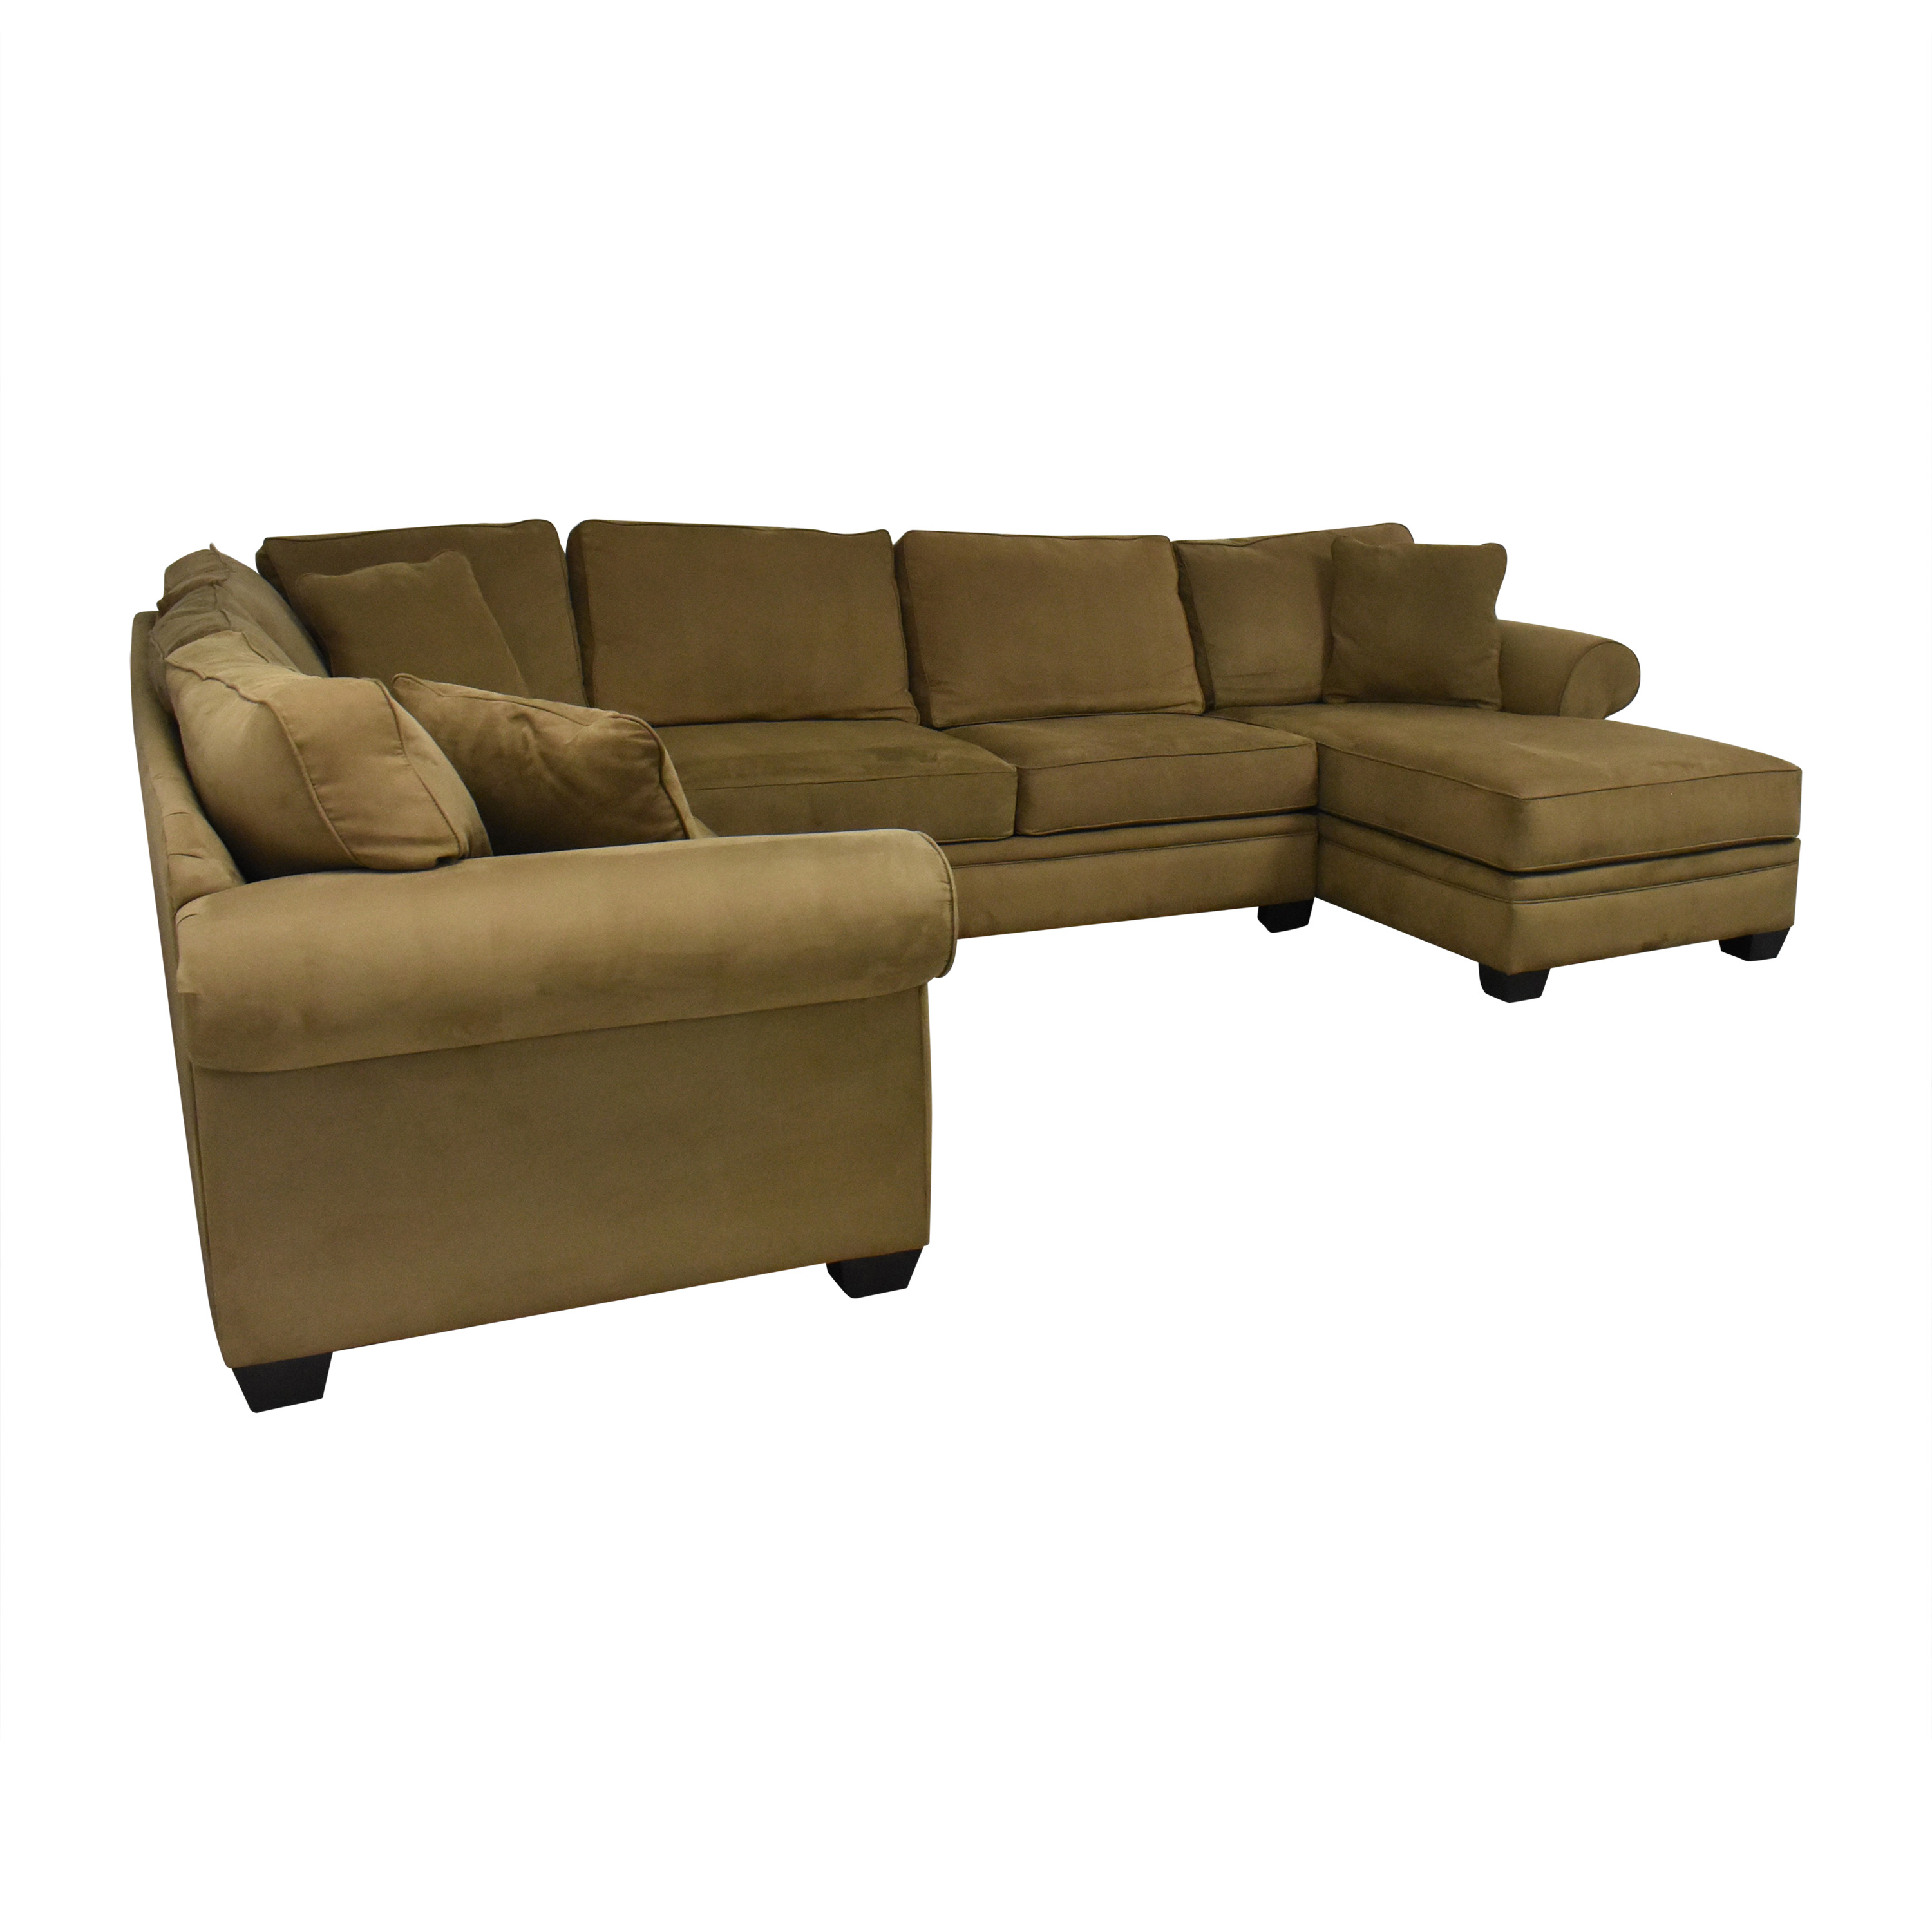 shop Macy's Corner Sectional Sofa with Chaise Macy's Sectionals